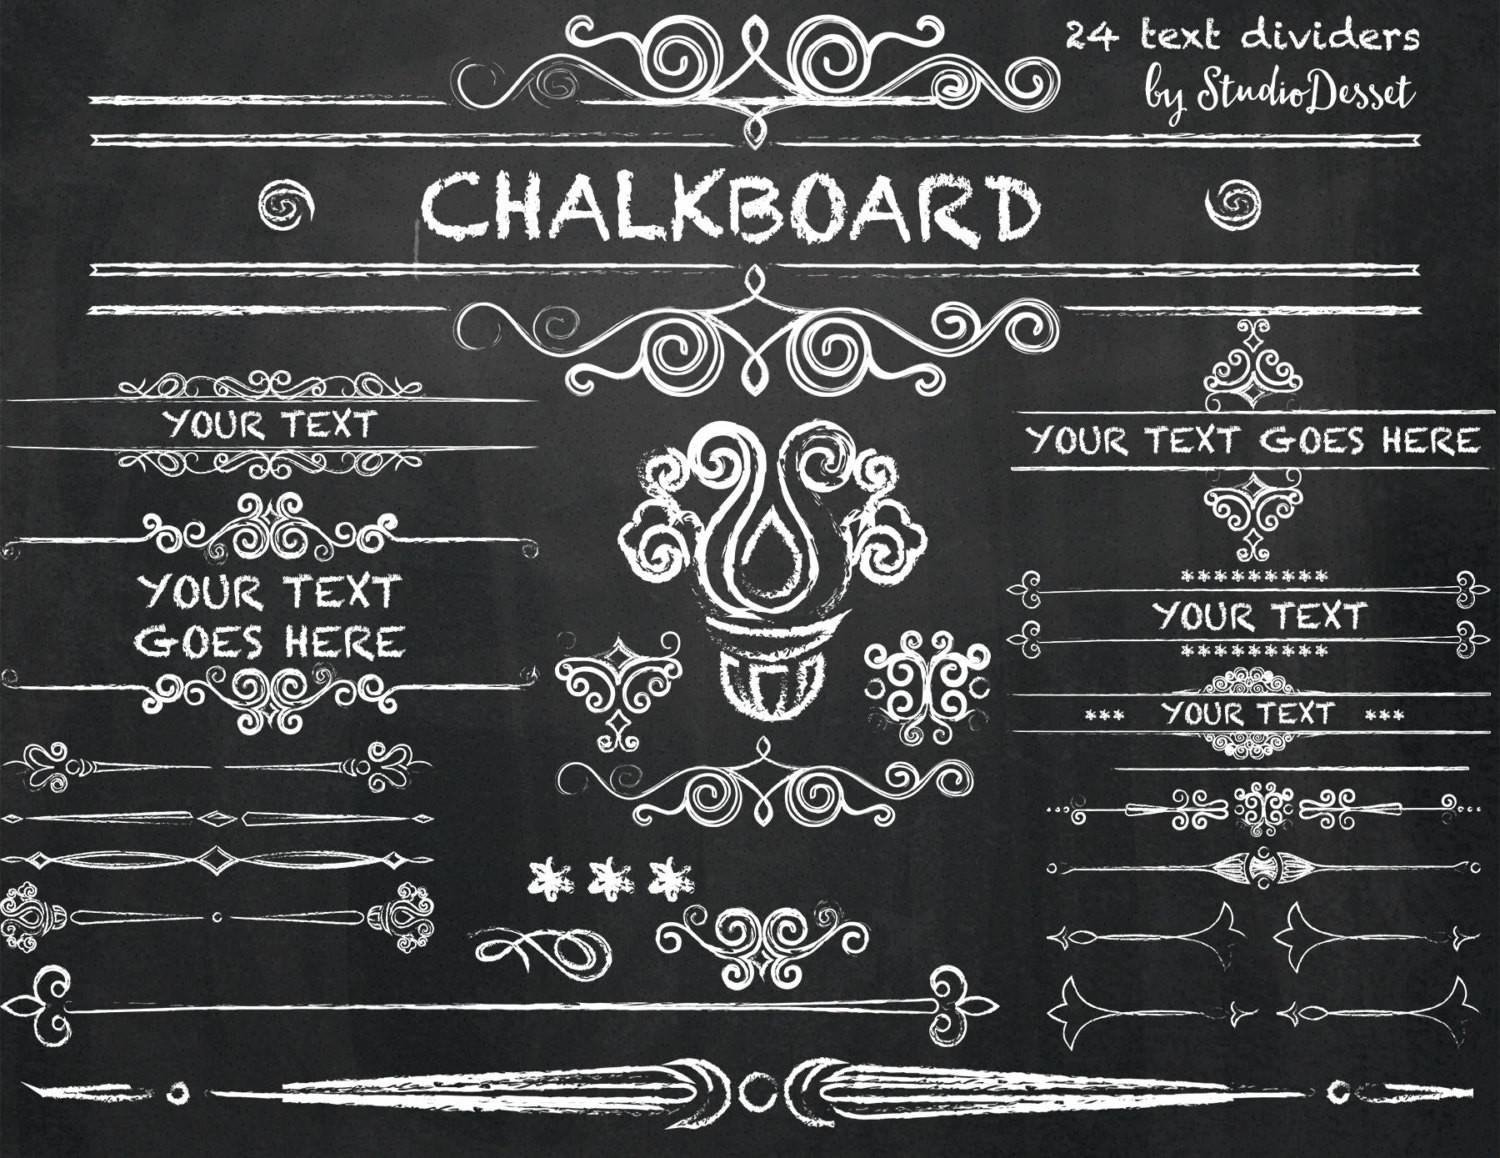 Chalkboard Cliparts Chalk Text Dividers Swirls Diy Wedding